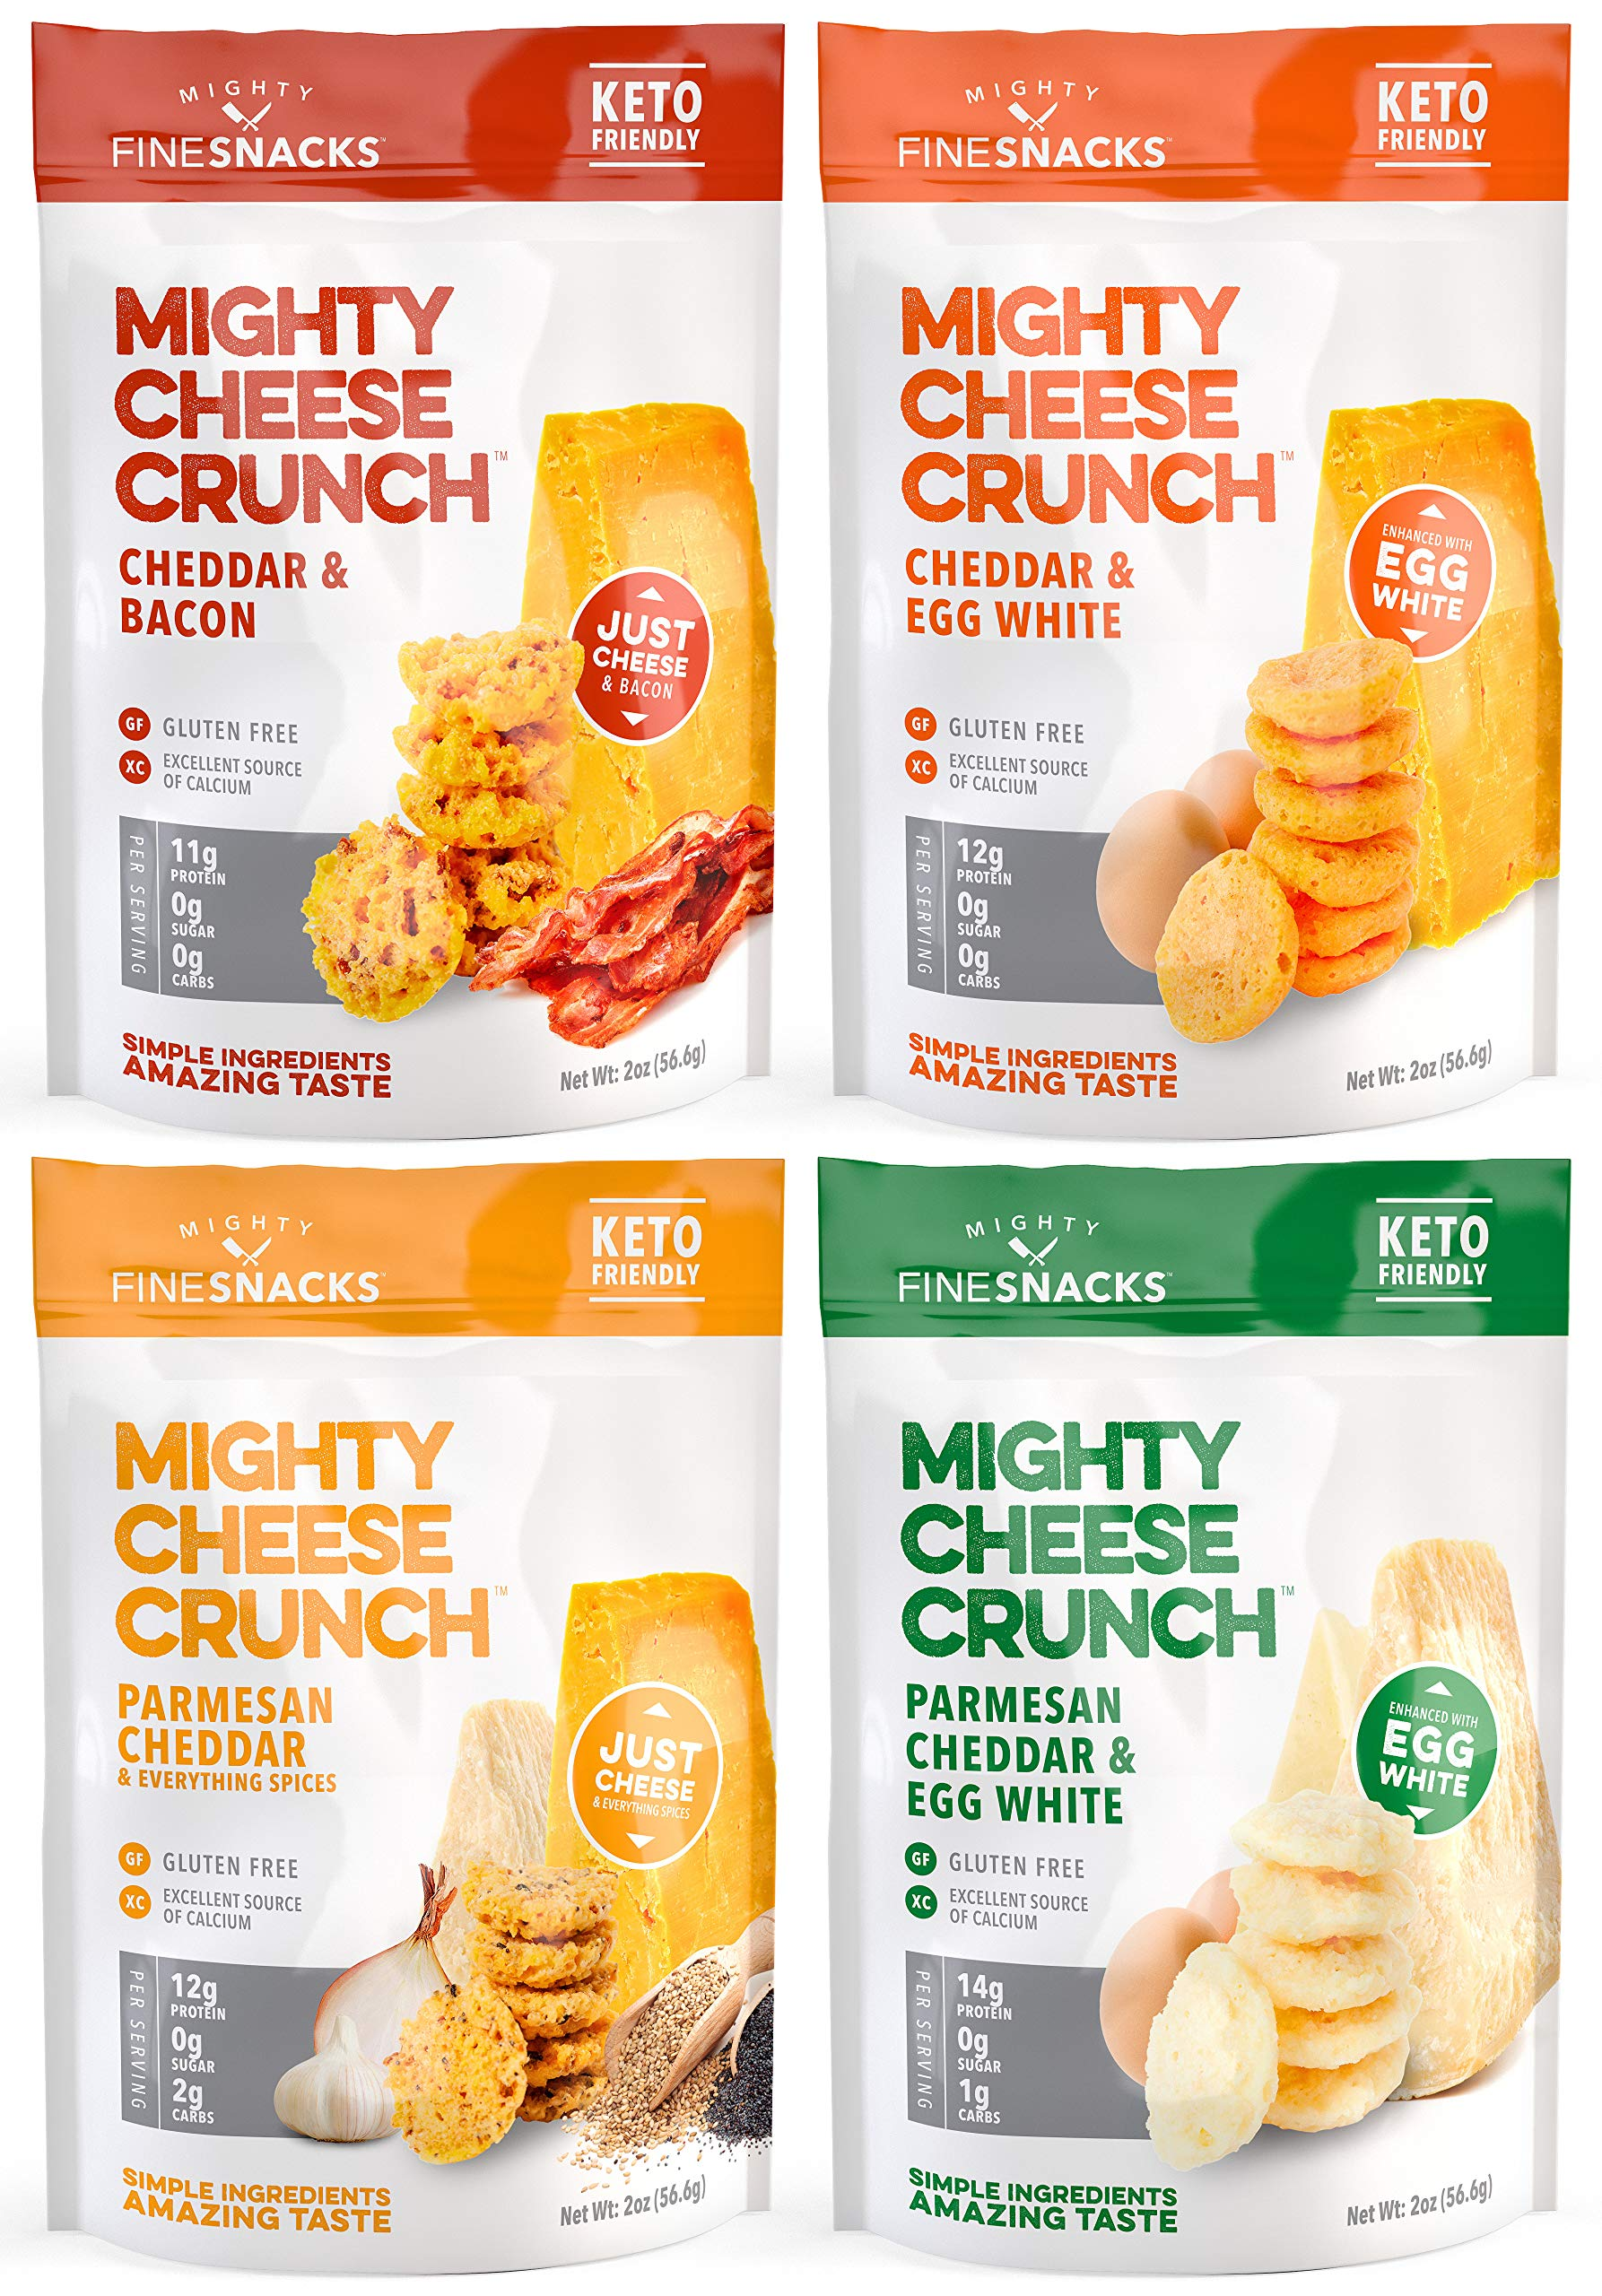 Low Carb, Gluten Free, High Protein Healthy Cheese and Egg Snack – Savory, Keto & Diet Friendly Cheese Crunch with Natural Ingredients, Variety Pack of 4, 2oz Bags, by Mighty Fine Snacks by Mighty Fine Snacks